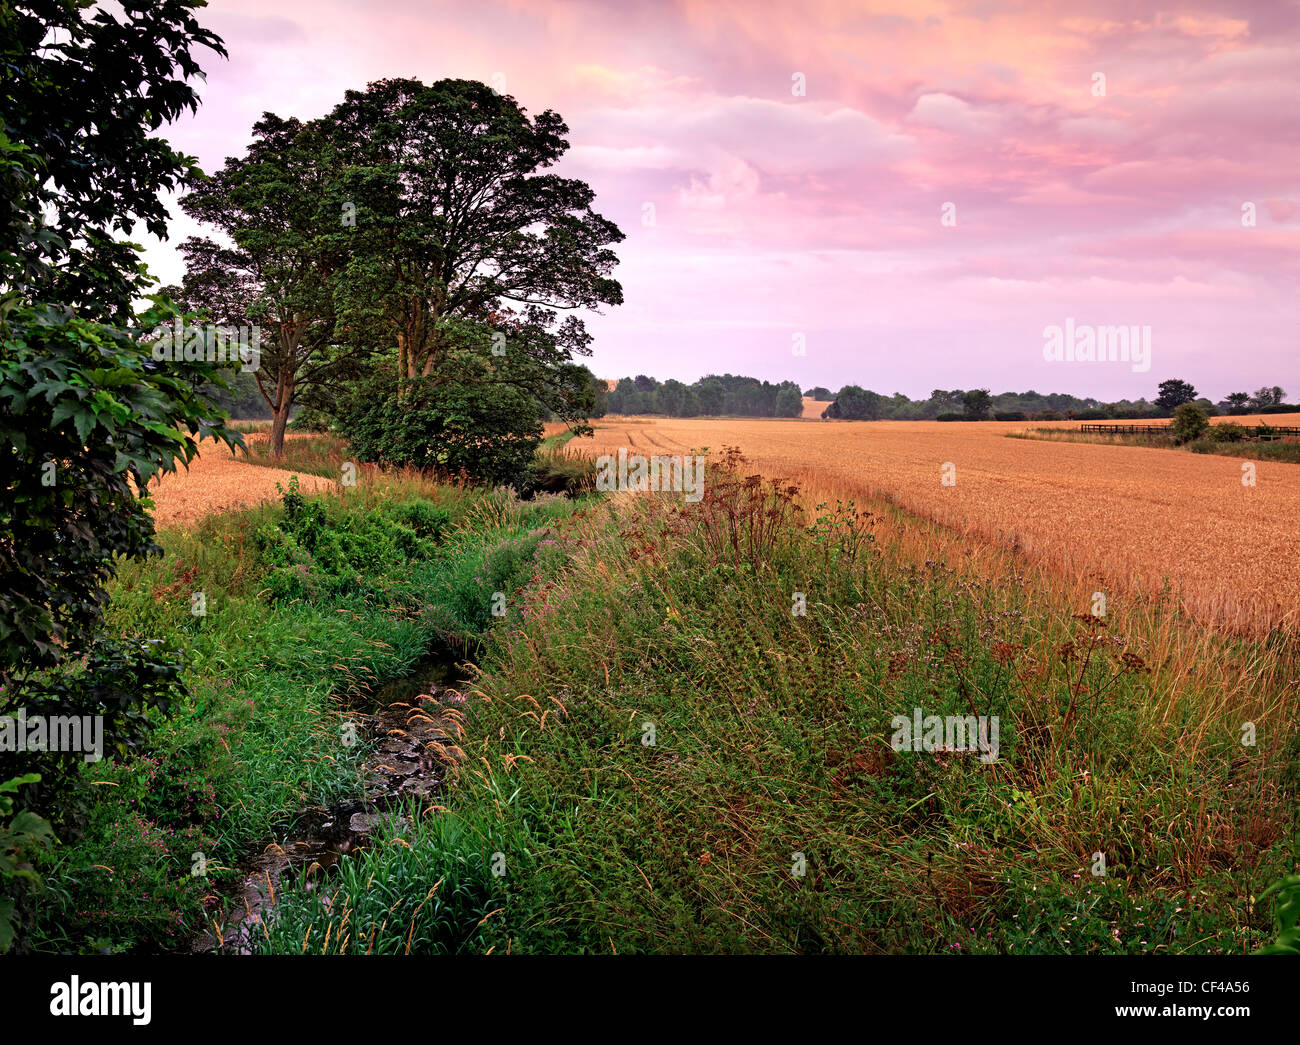 Late summer evening view over a wheatfield in the English countryside. - Stock Image